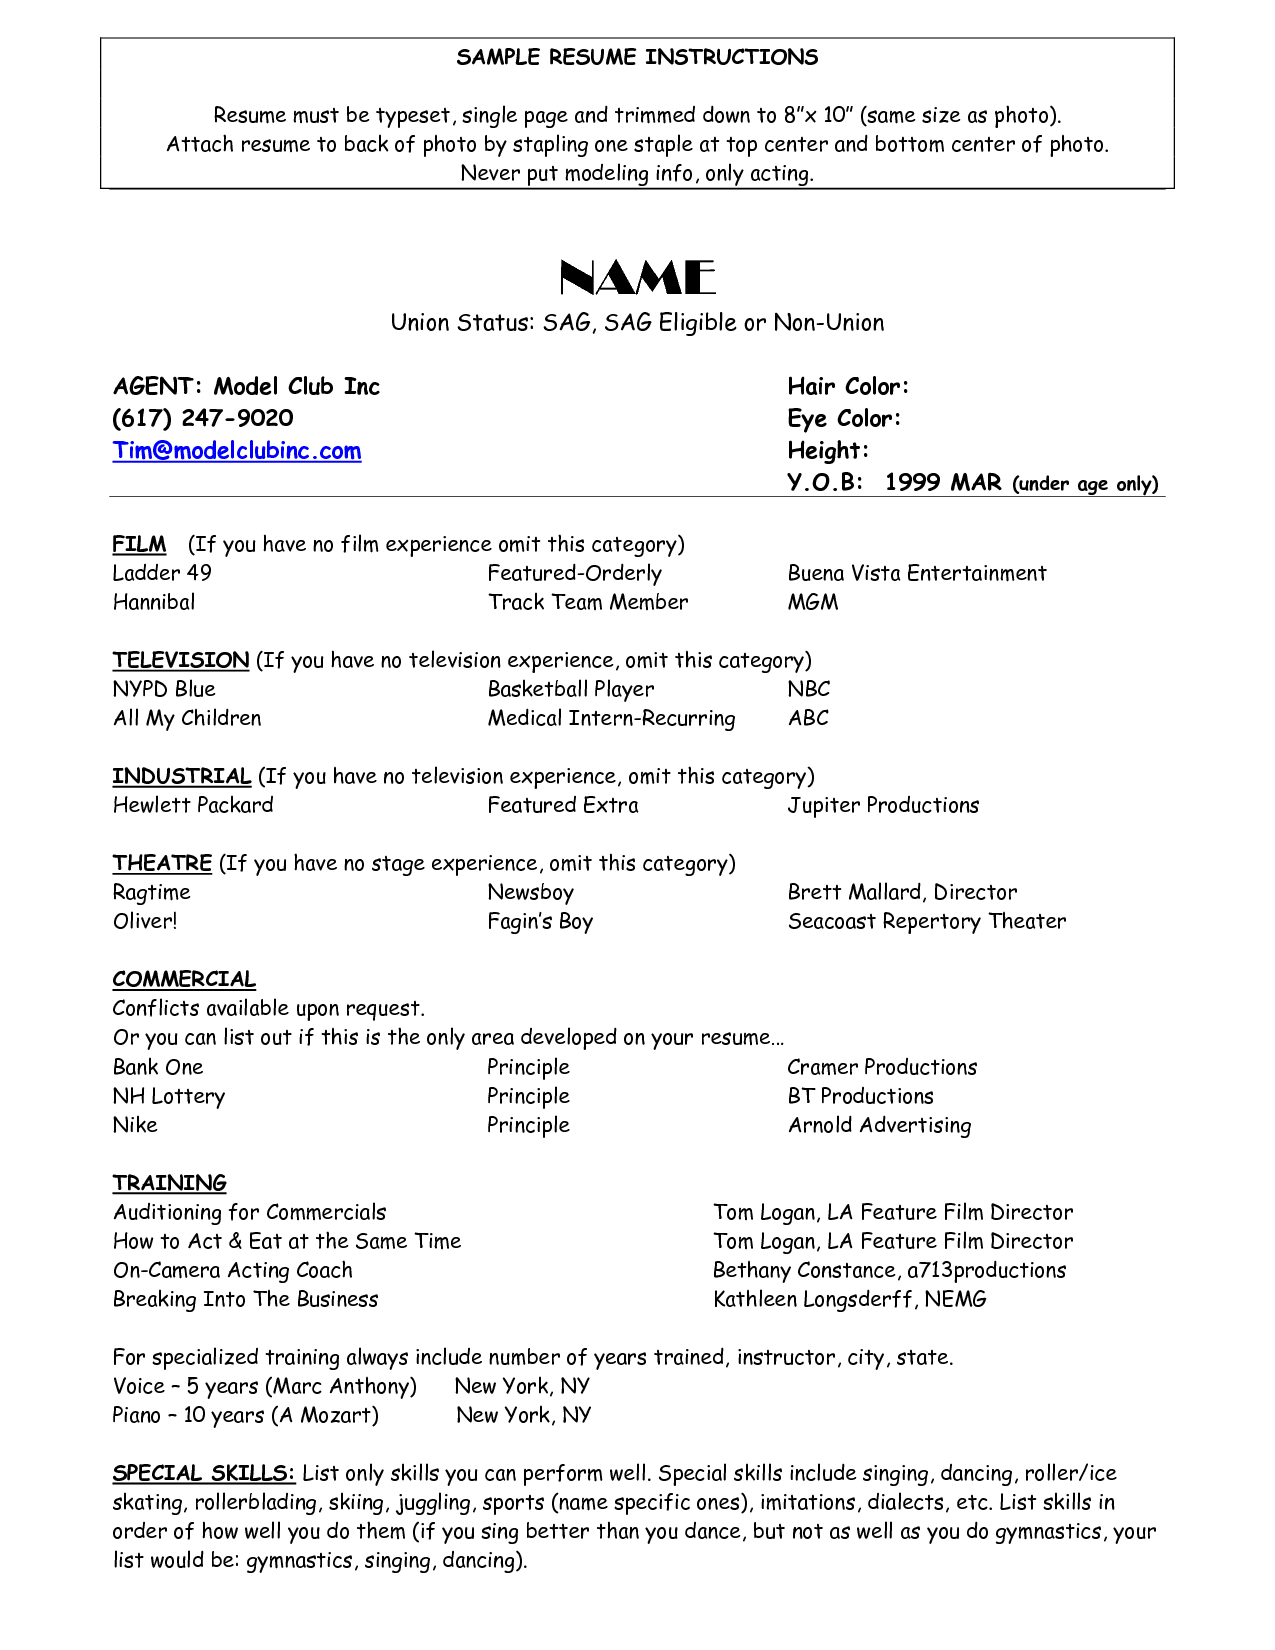 Resume For Child Actor | Scope Of Work Template  Audition Resume Format